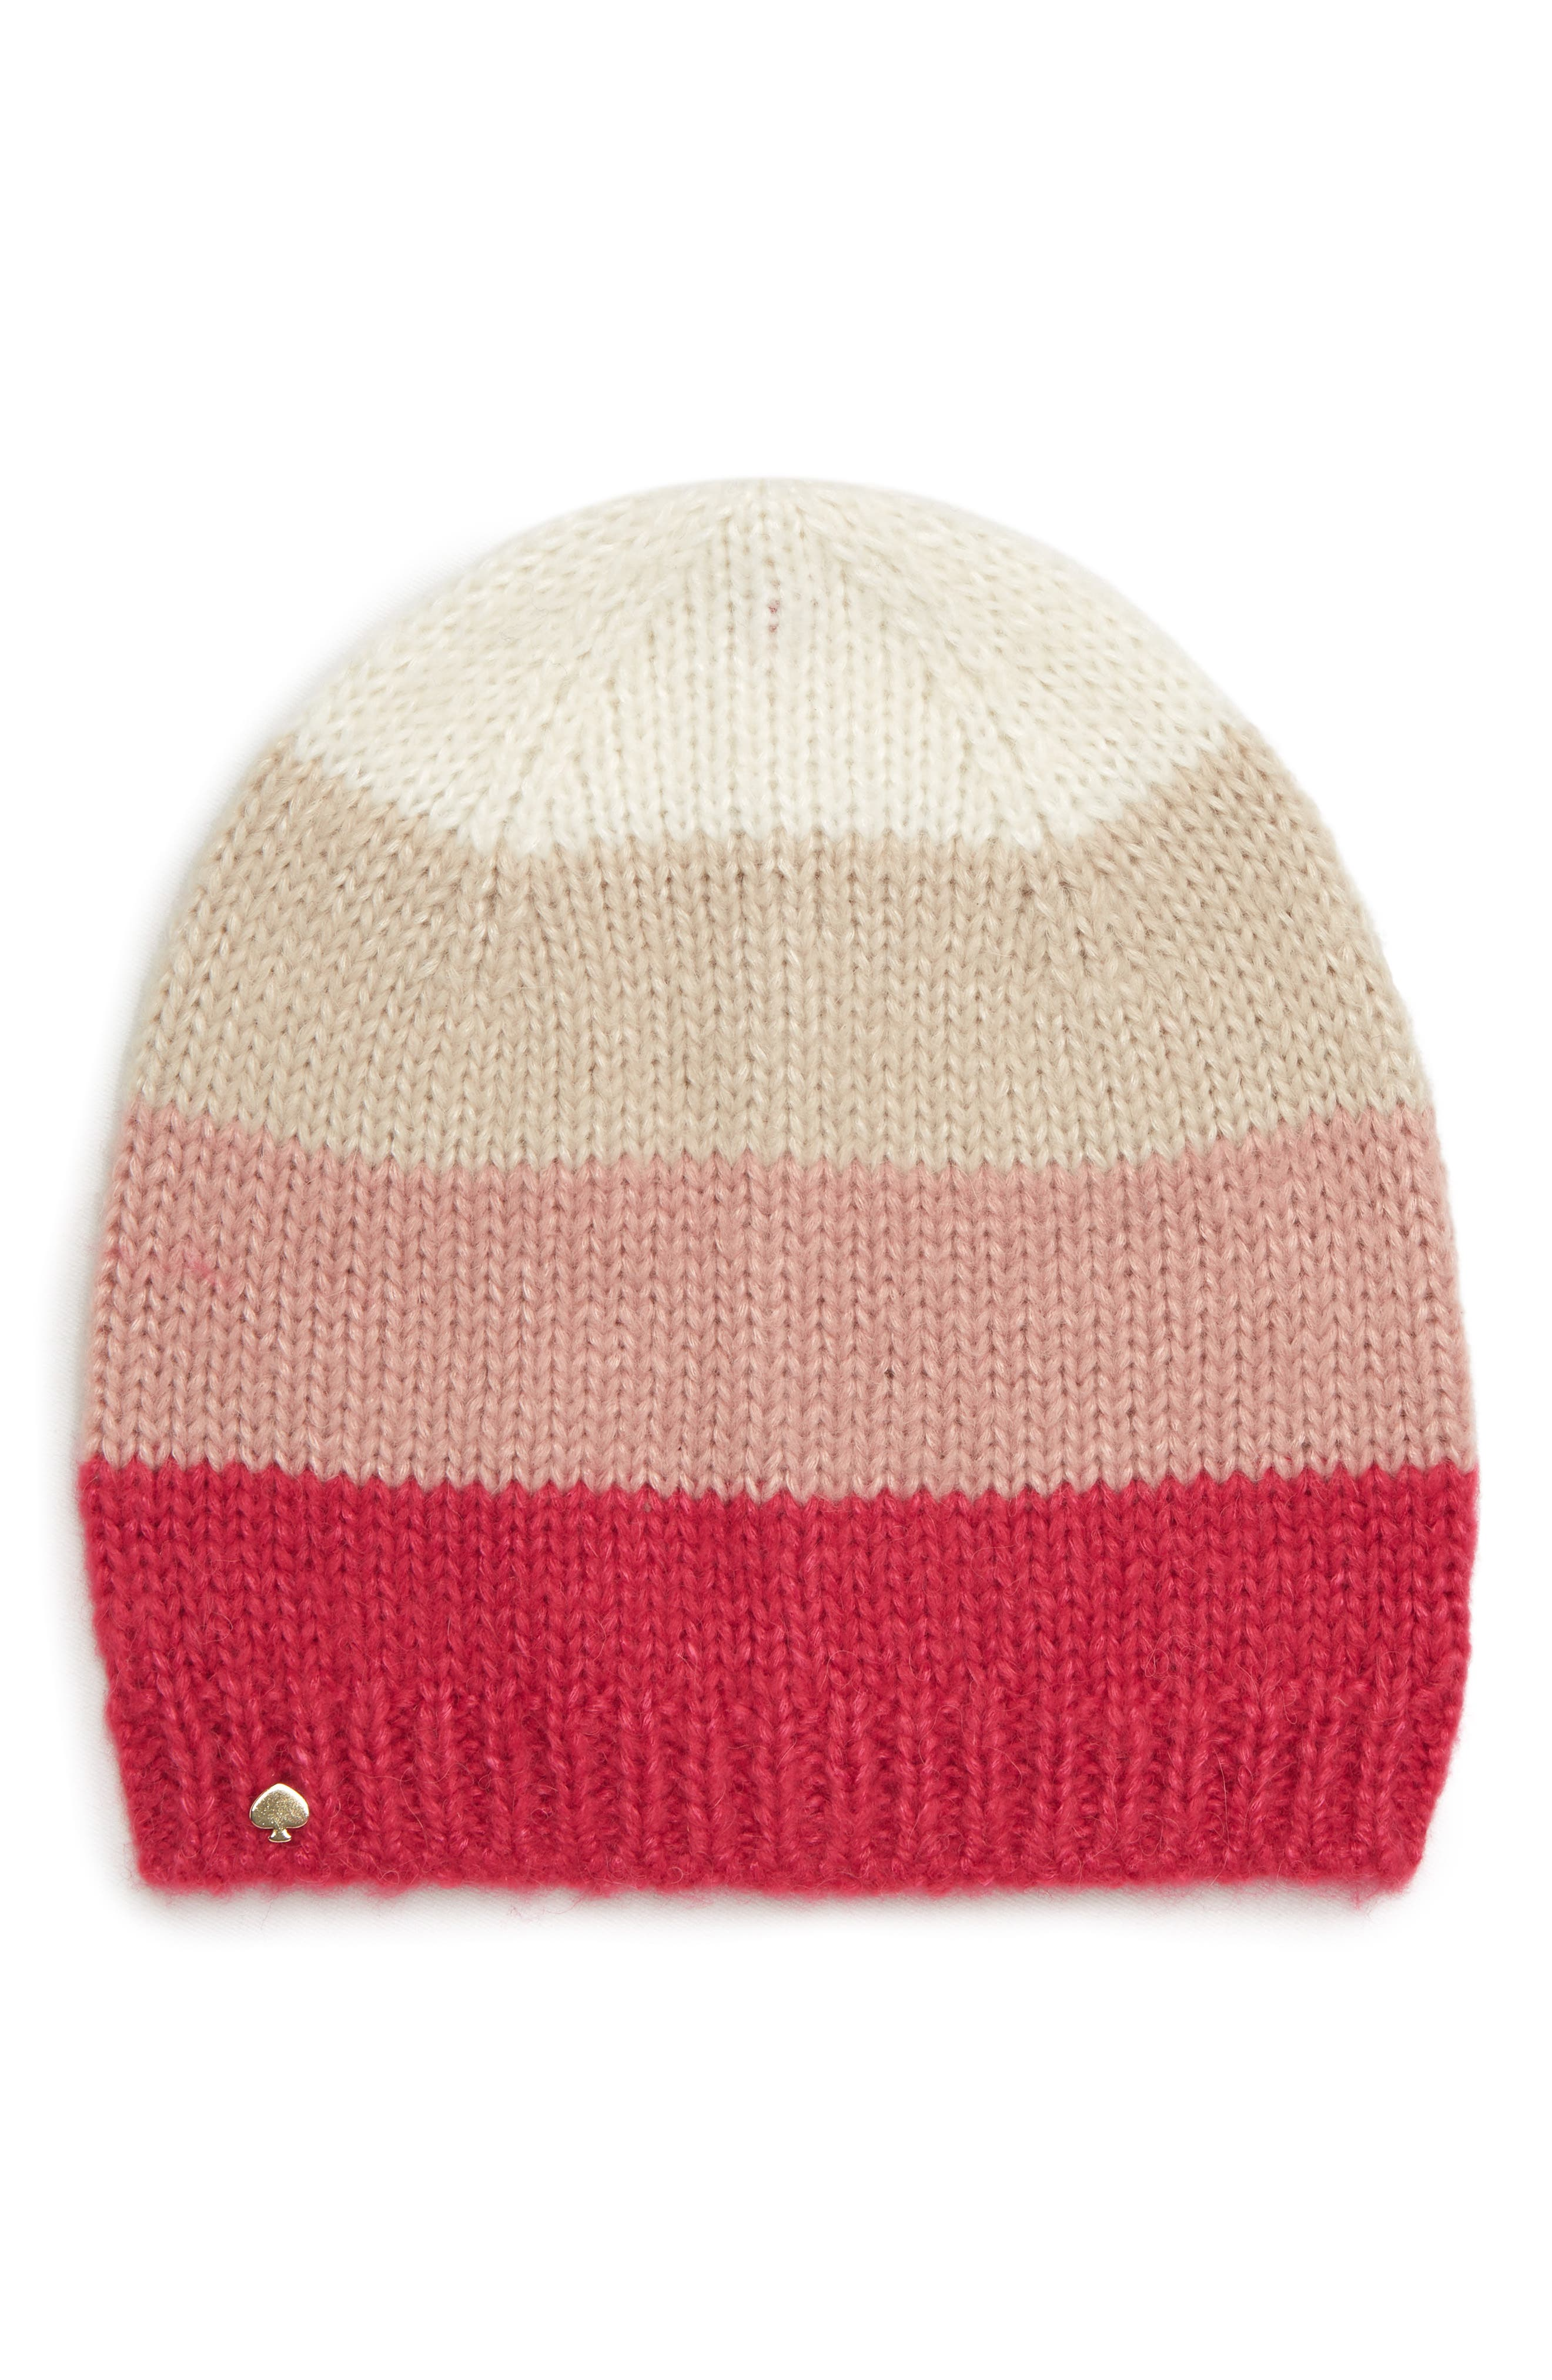 KATE SPADE NEW YORK, colorblock beanie, Main thumbnail 1, color, 658